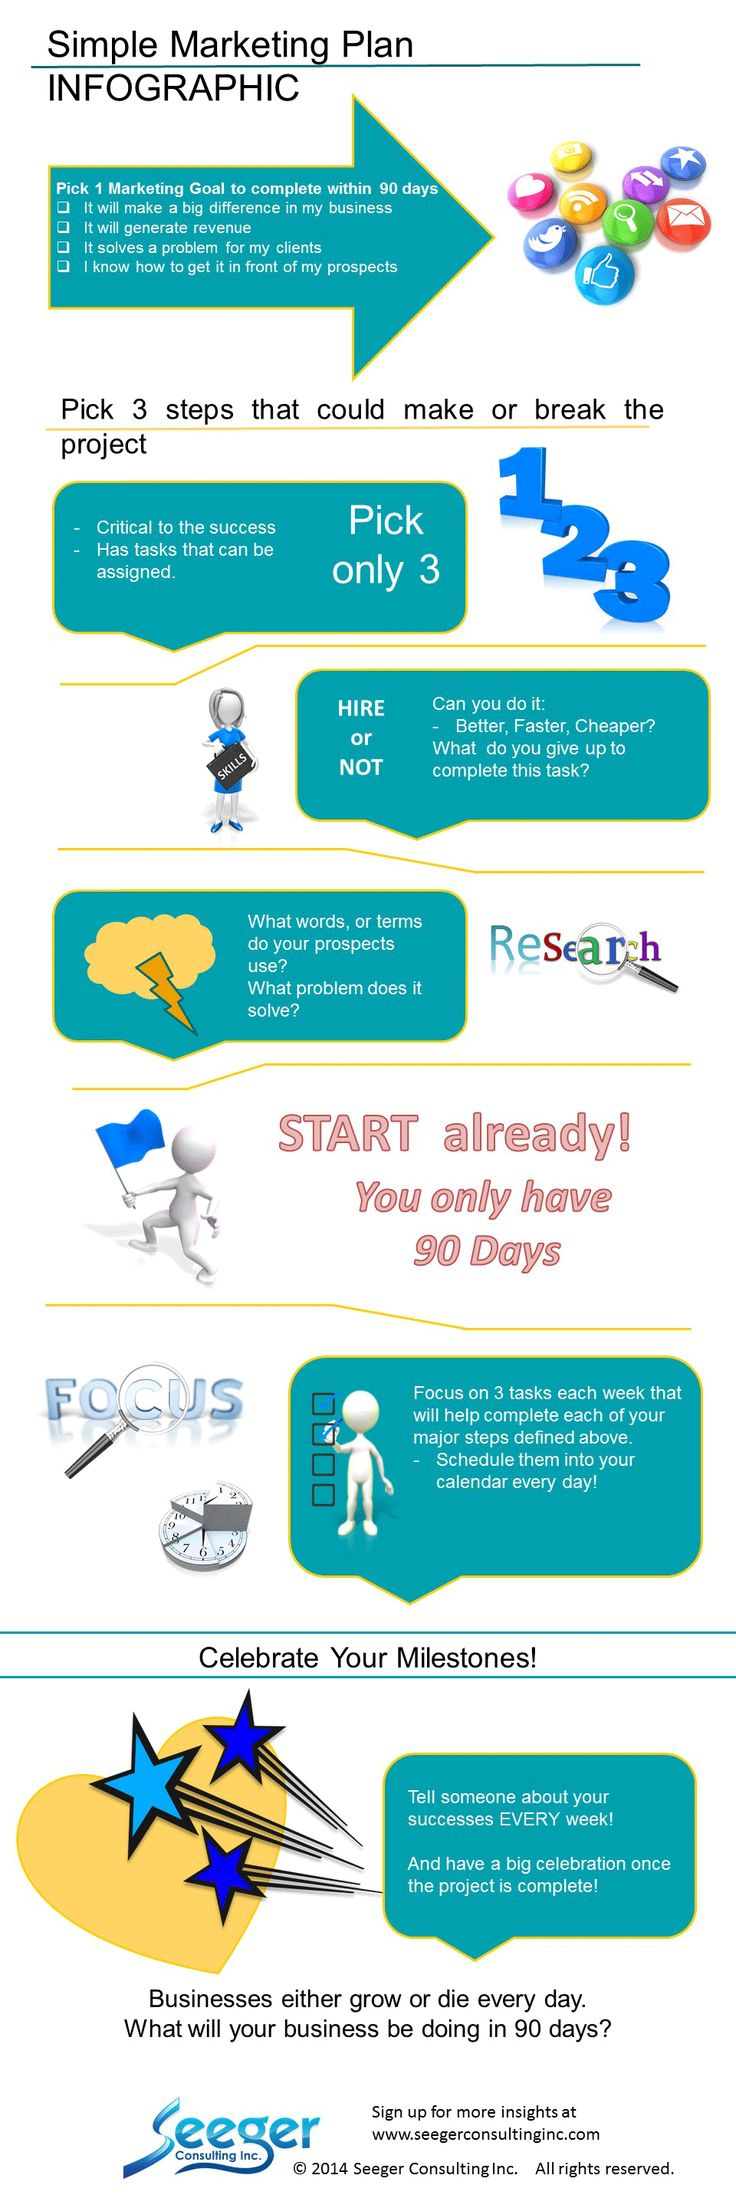 Simple Marketing Plan Infographic